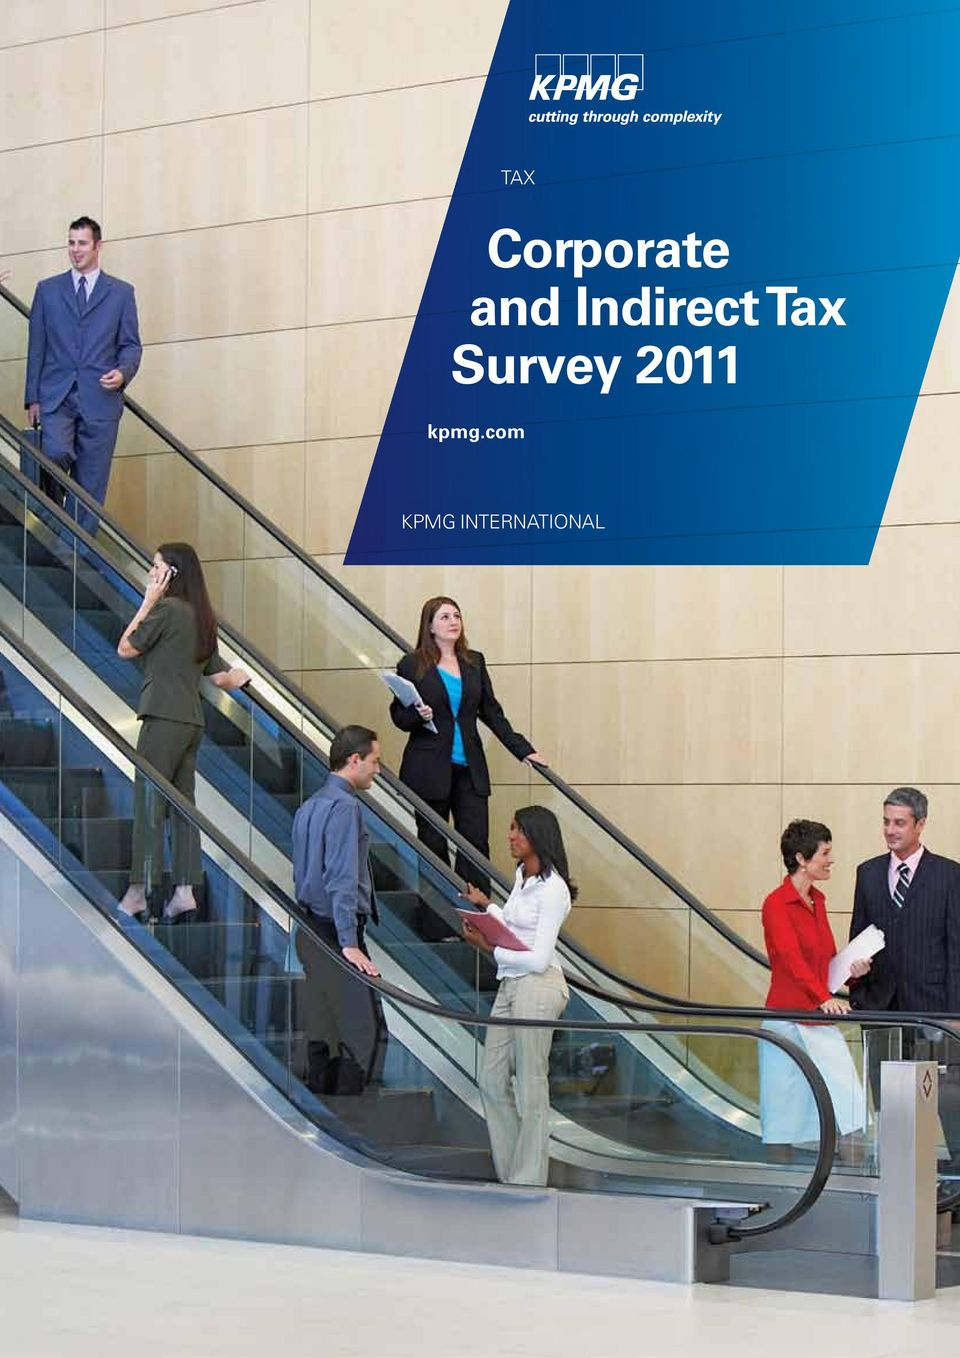 Survey 2011 kpmg.